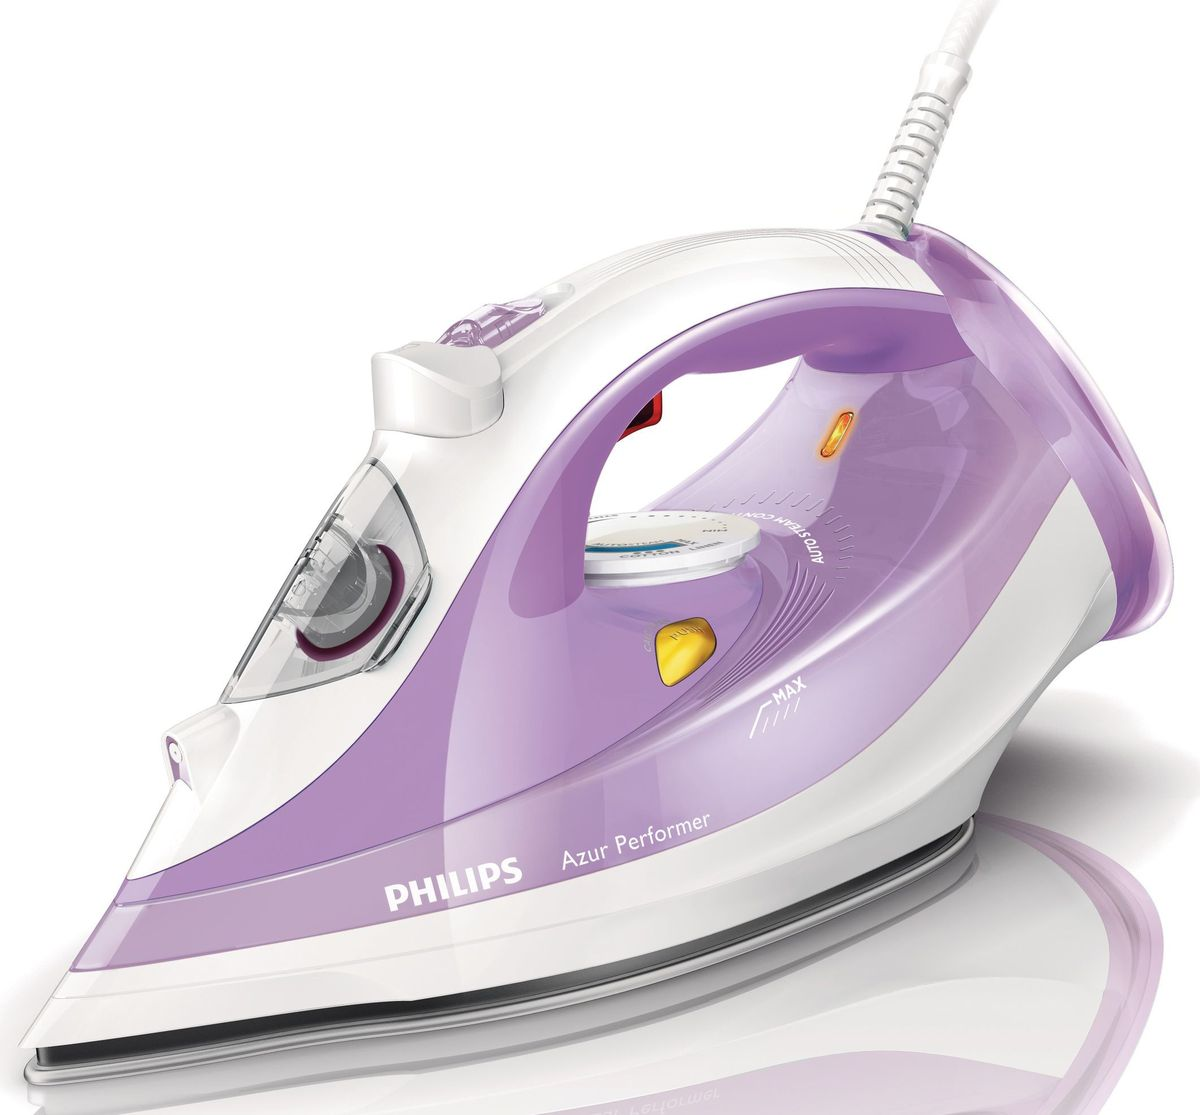 Philips GC3803/37 Azur Performer, White Purple утюг - Утюги